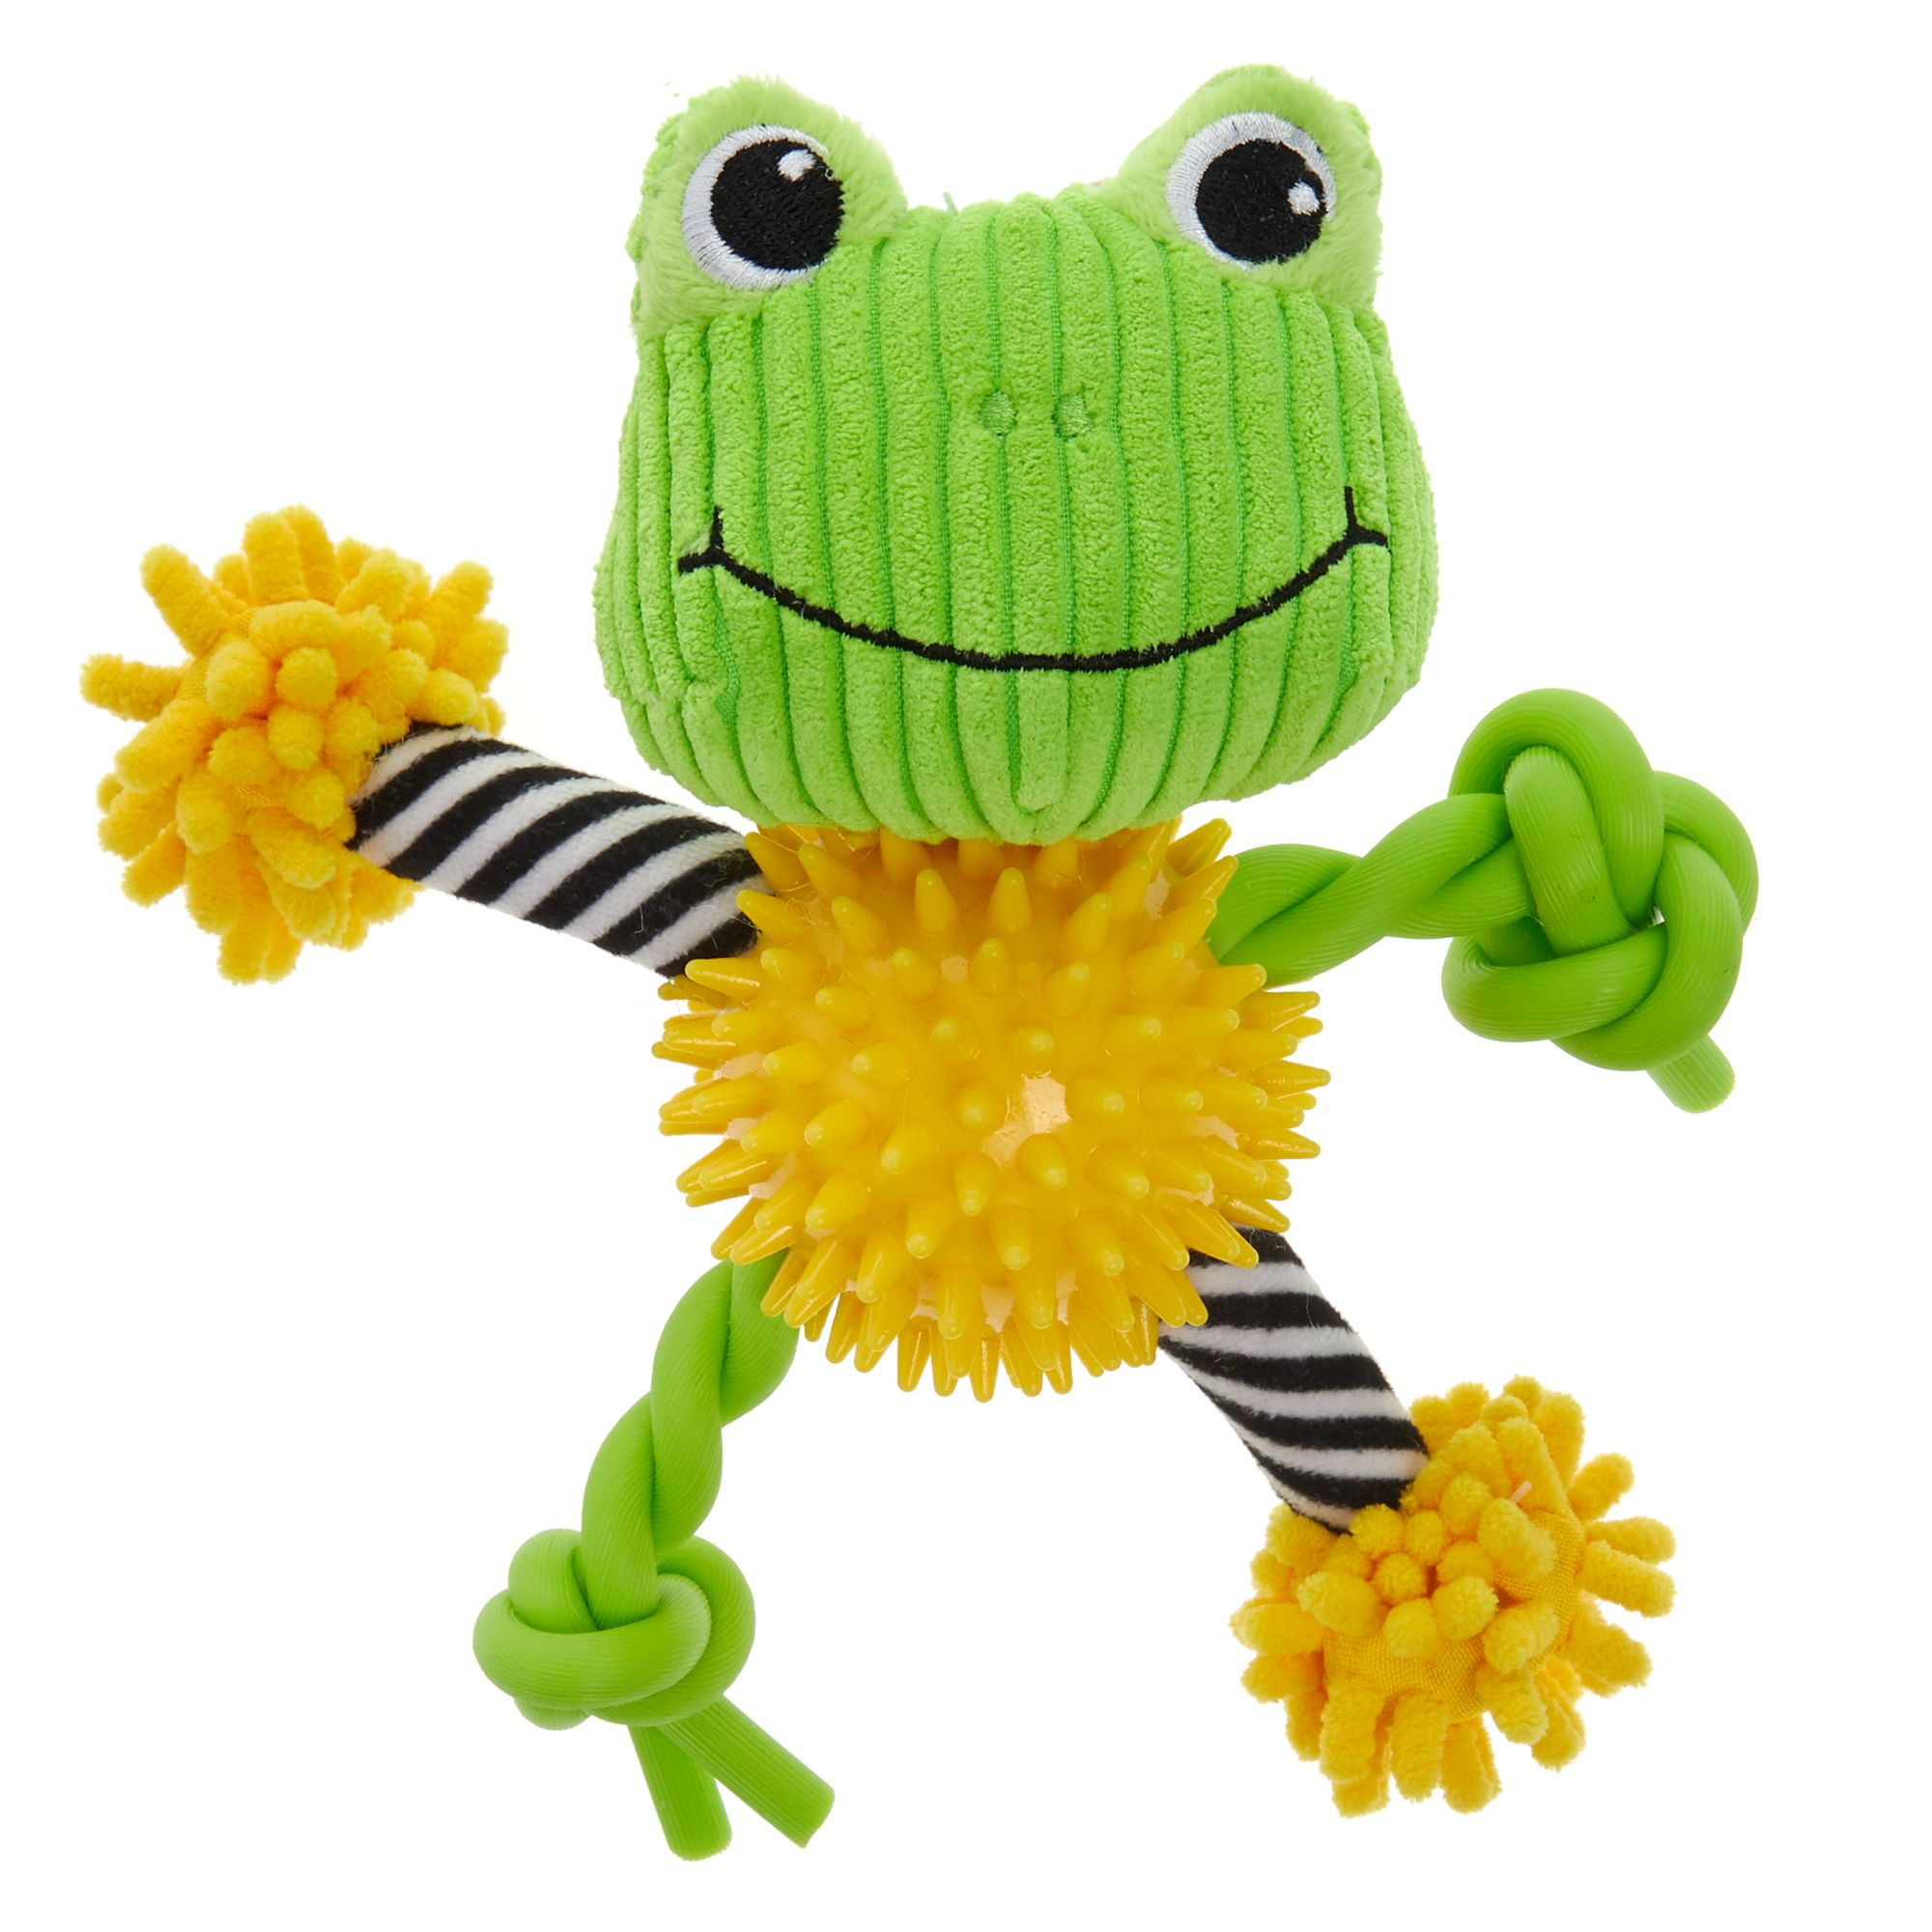 Puppies R Us Frog Noodle Dog Toy Plush Squeaker Puppies R Us